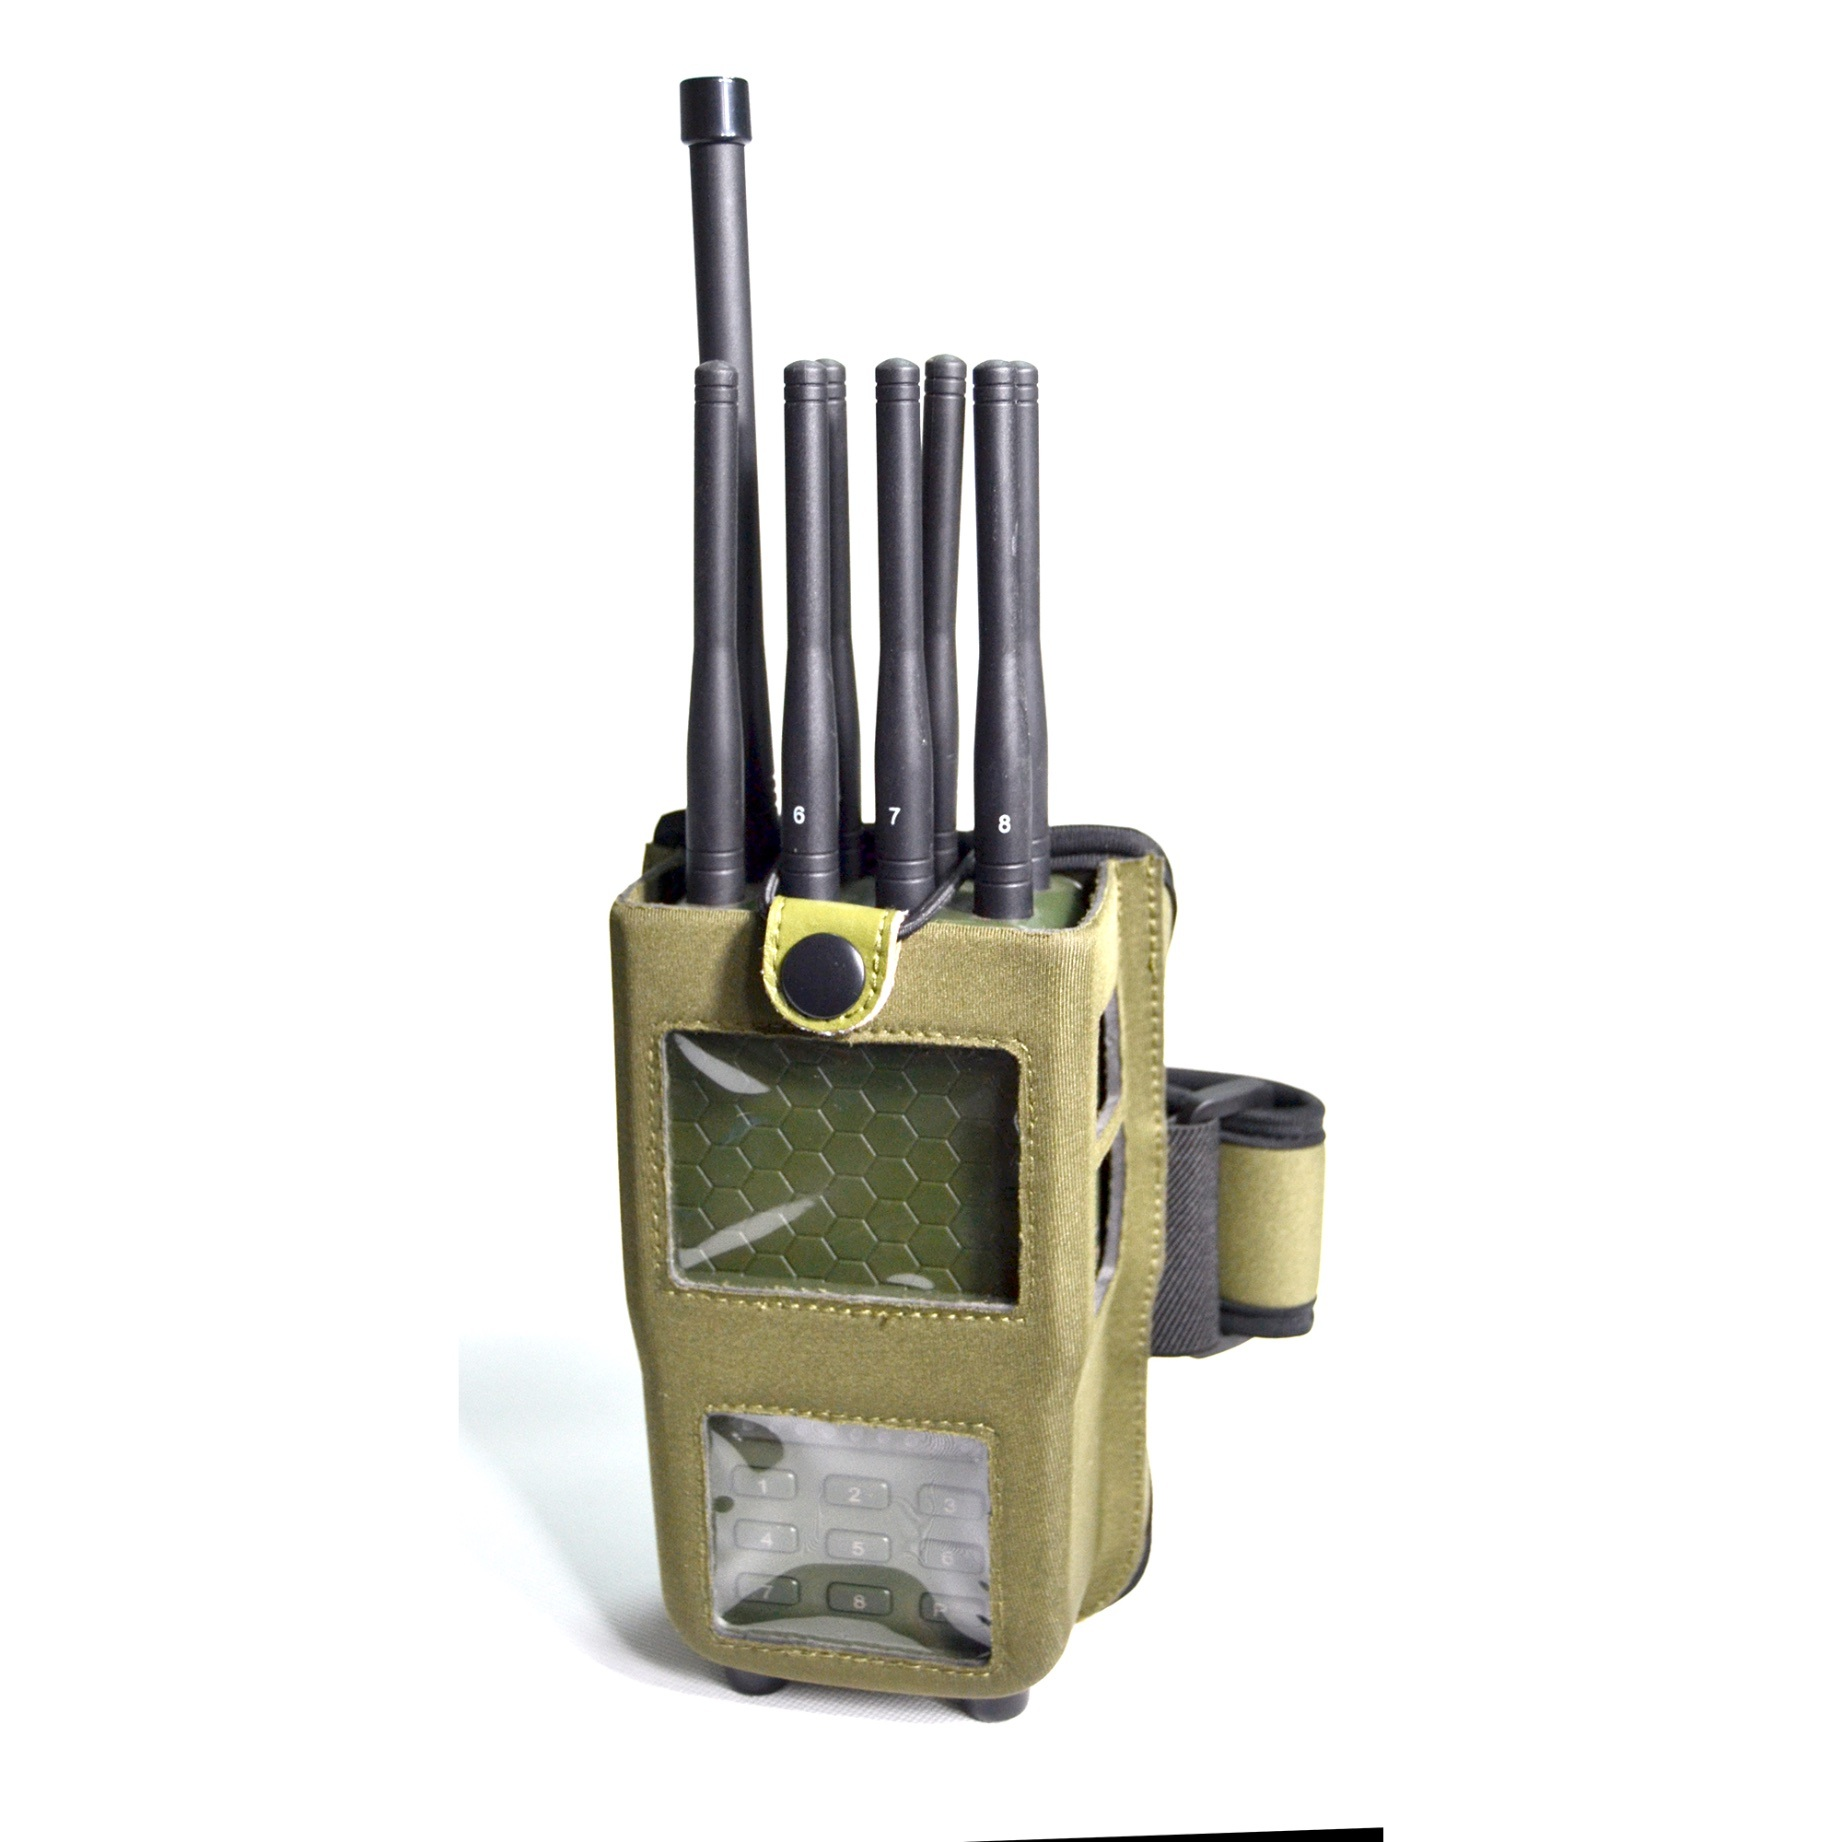 Gps,xmradio, jammer headphones work - mobile jammer working solutions